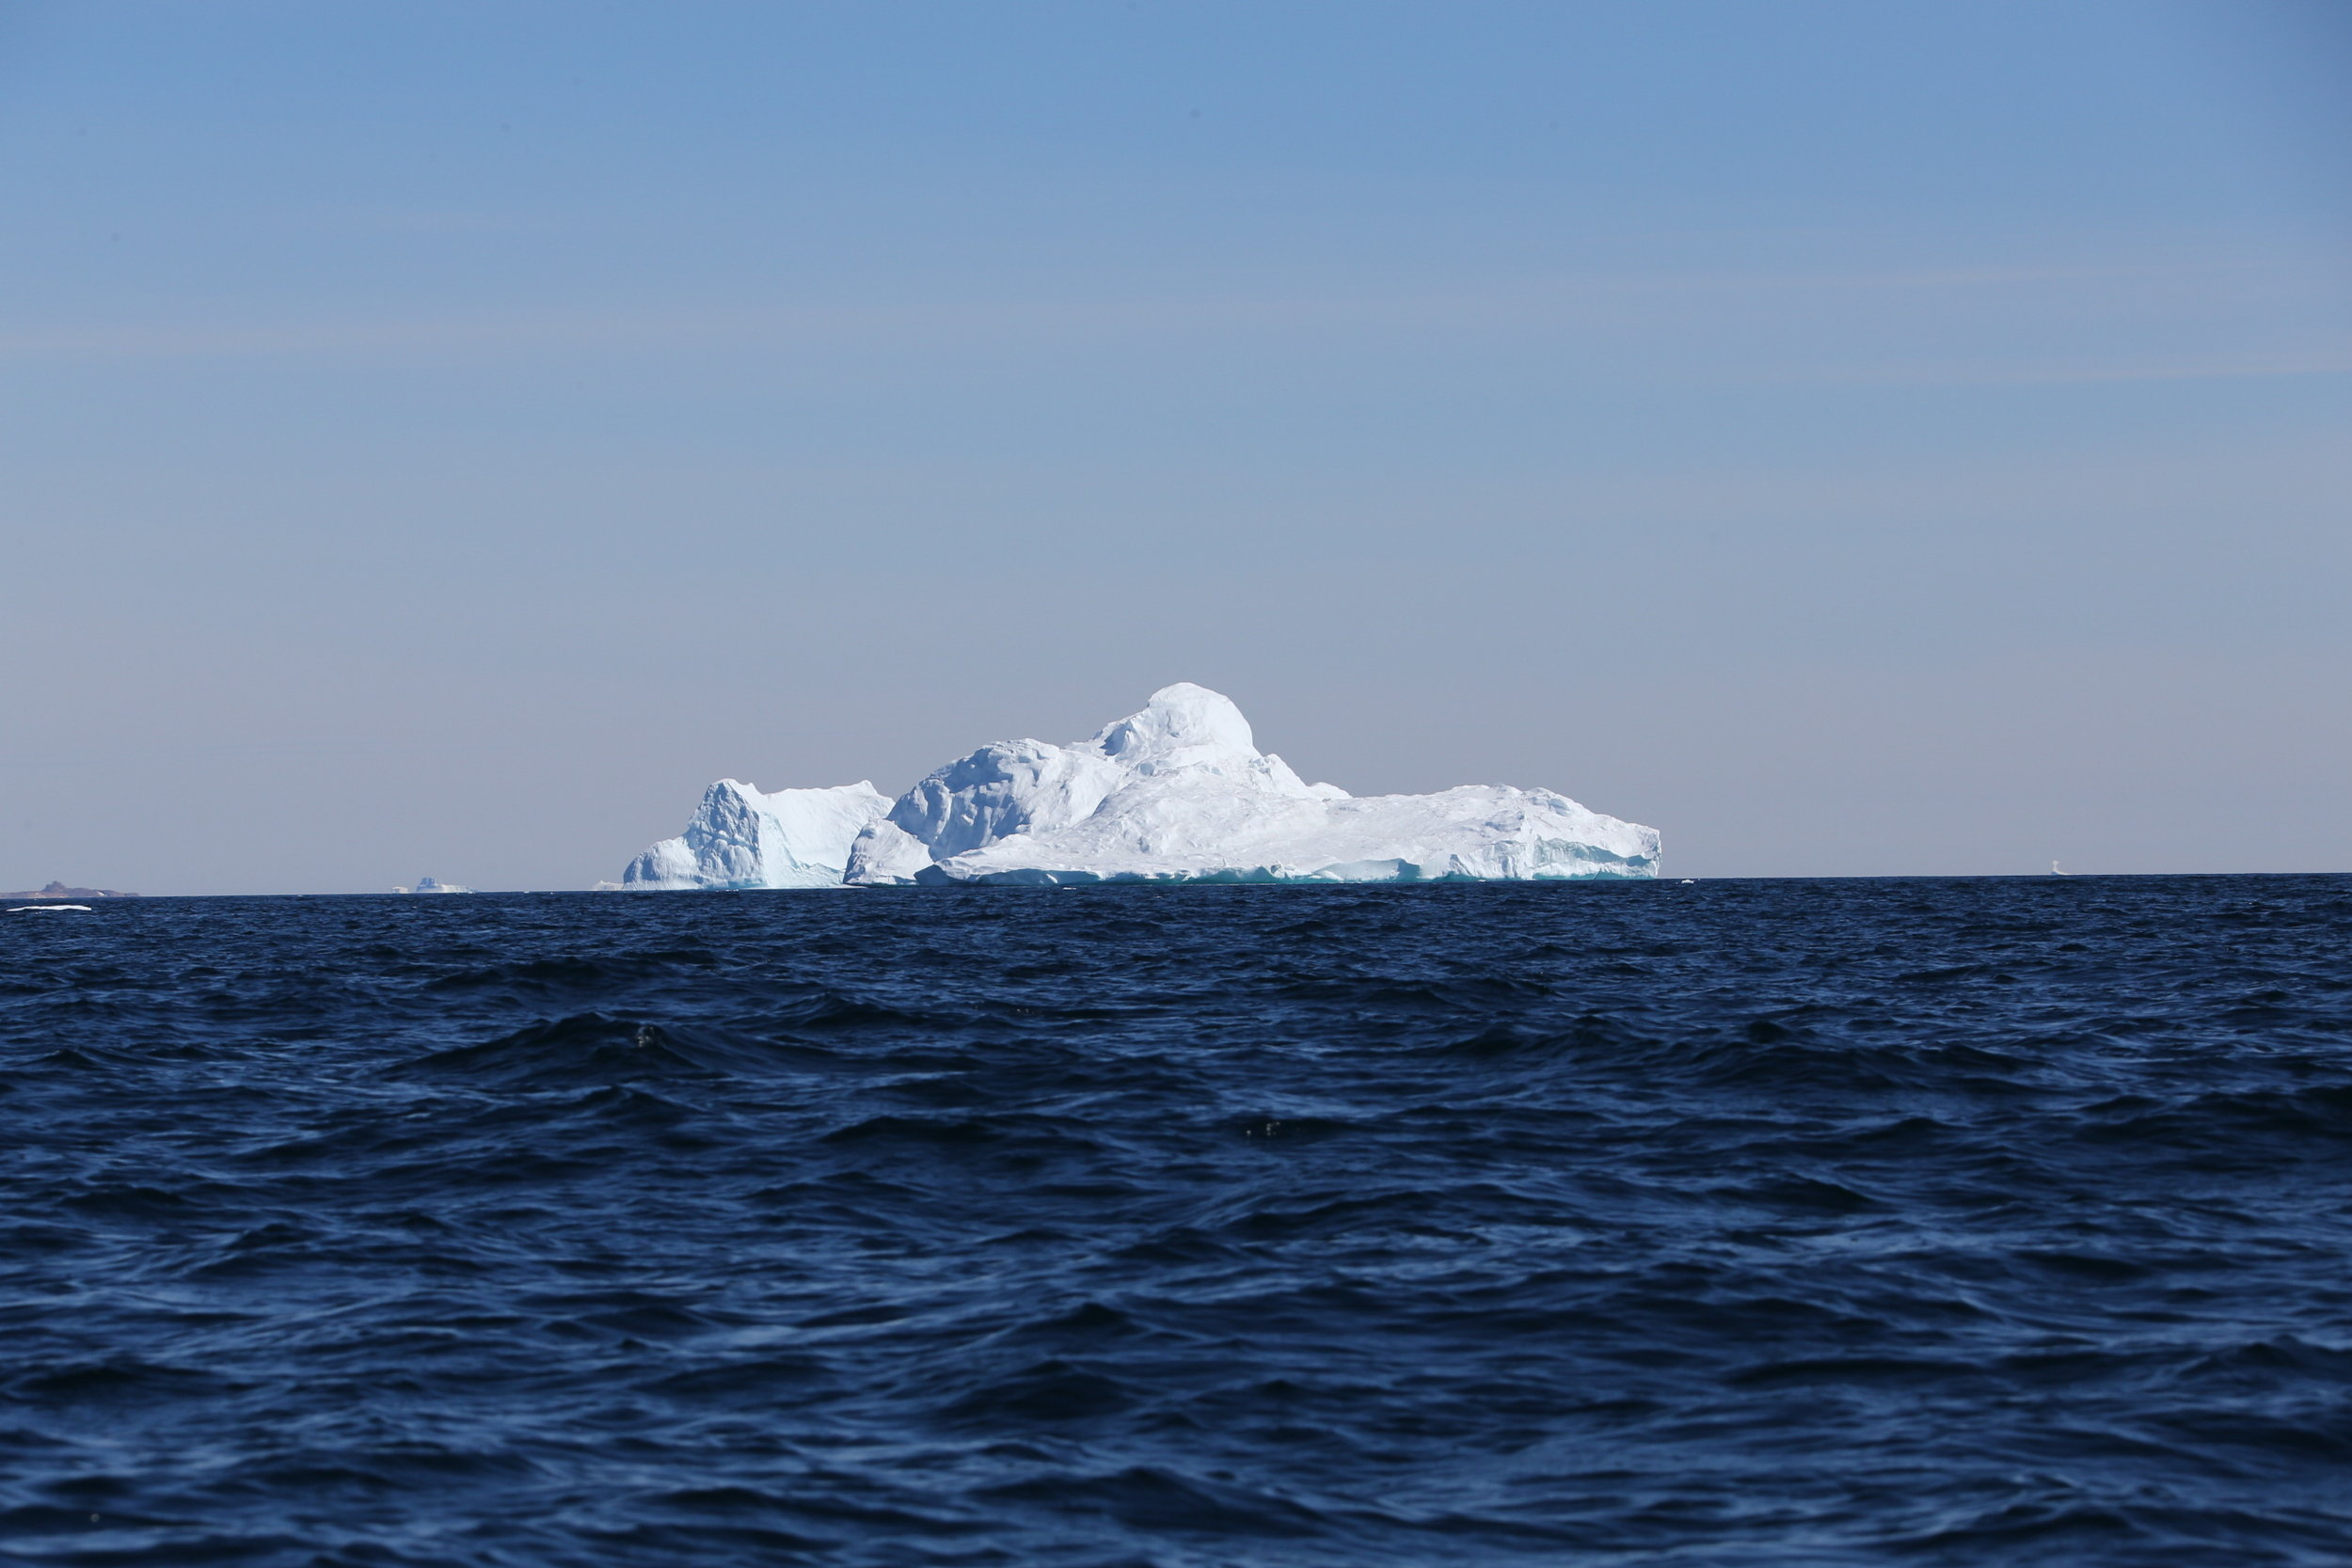 A massive, larger-than-cruise-ship sized iceberg in the sea off the eastern Greenlandic coast.